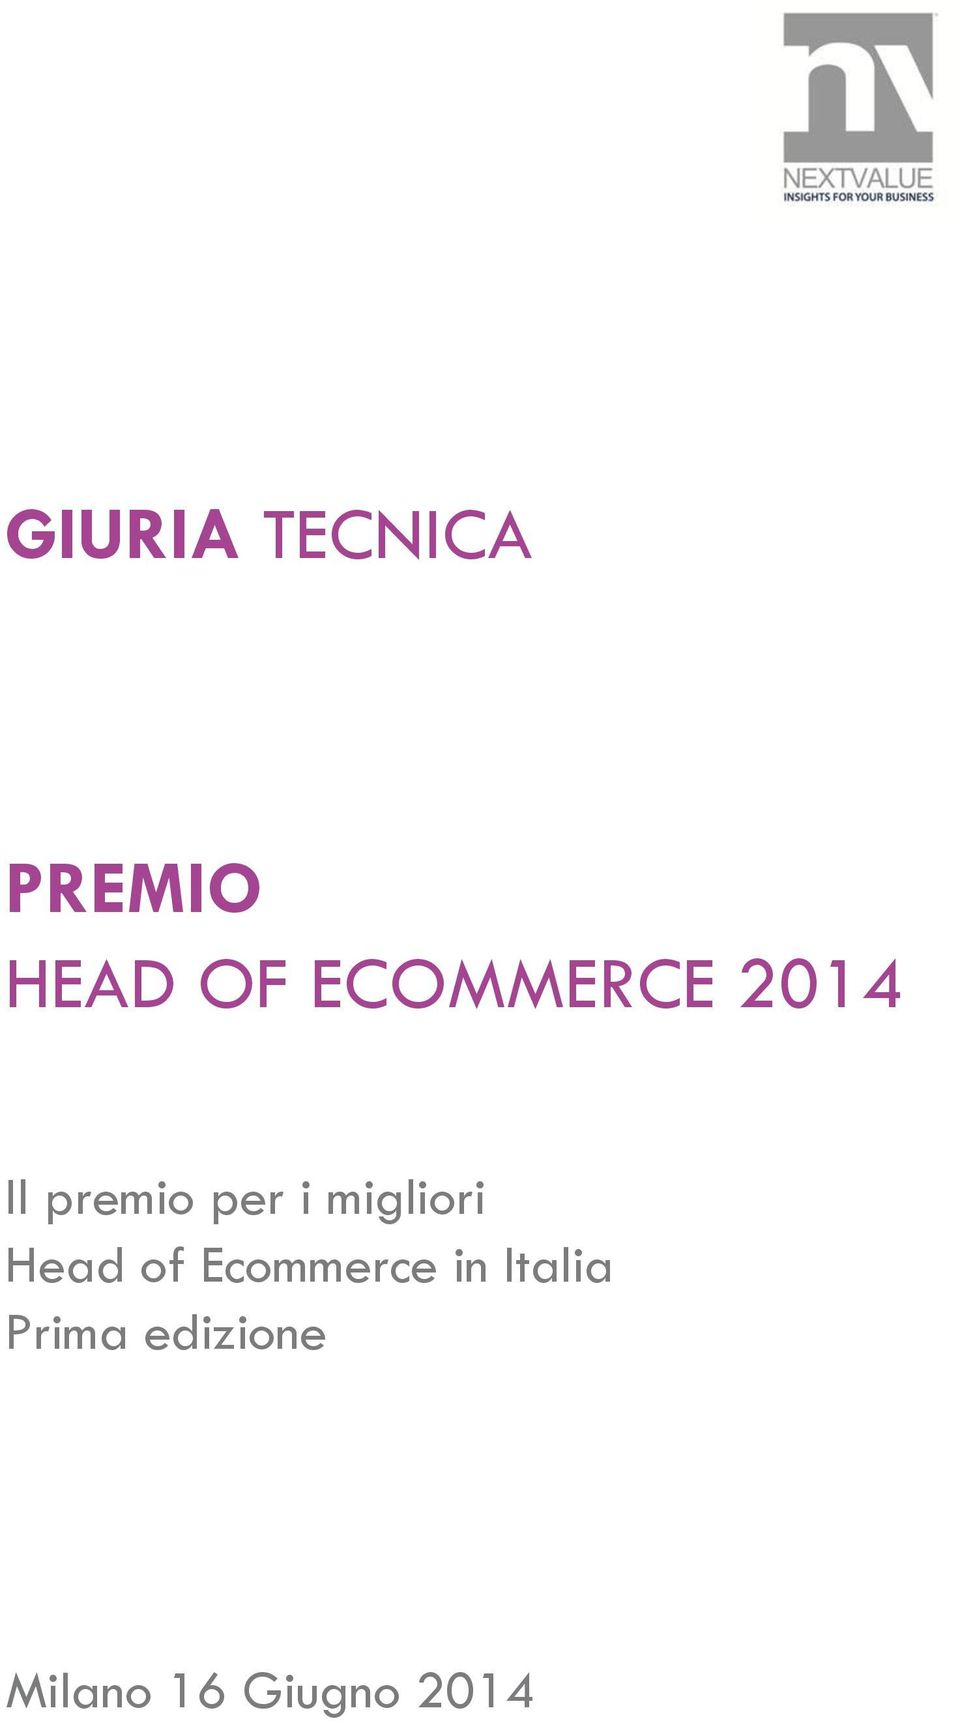 of Ecommerce in Italia Prima